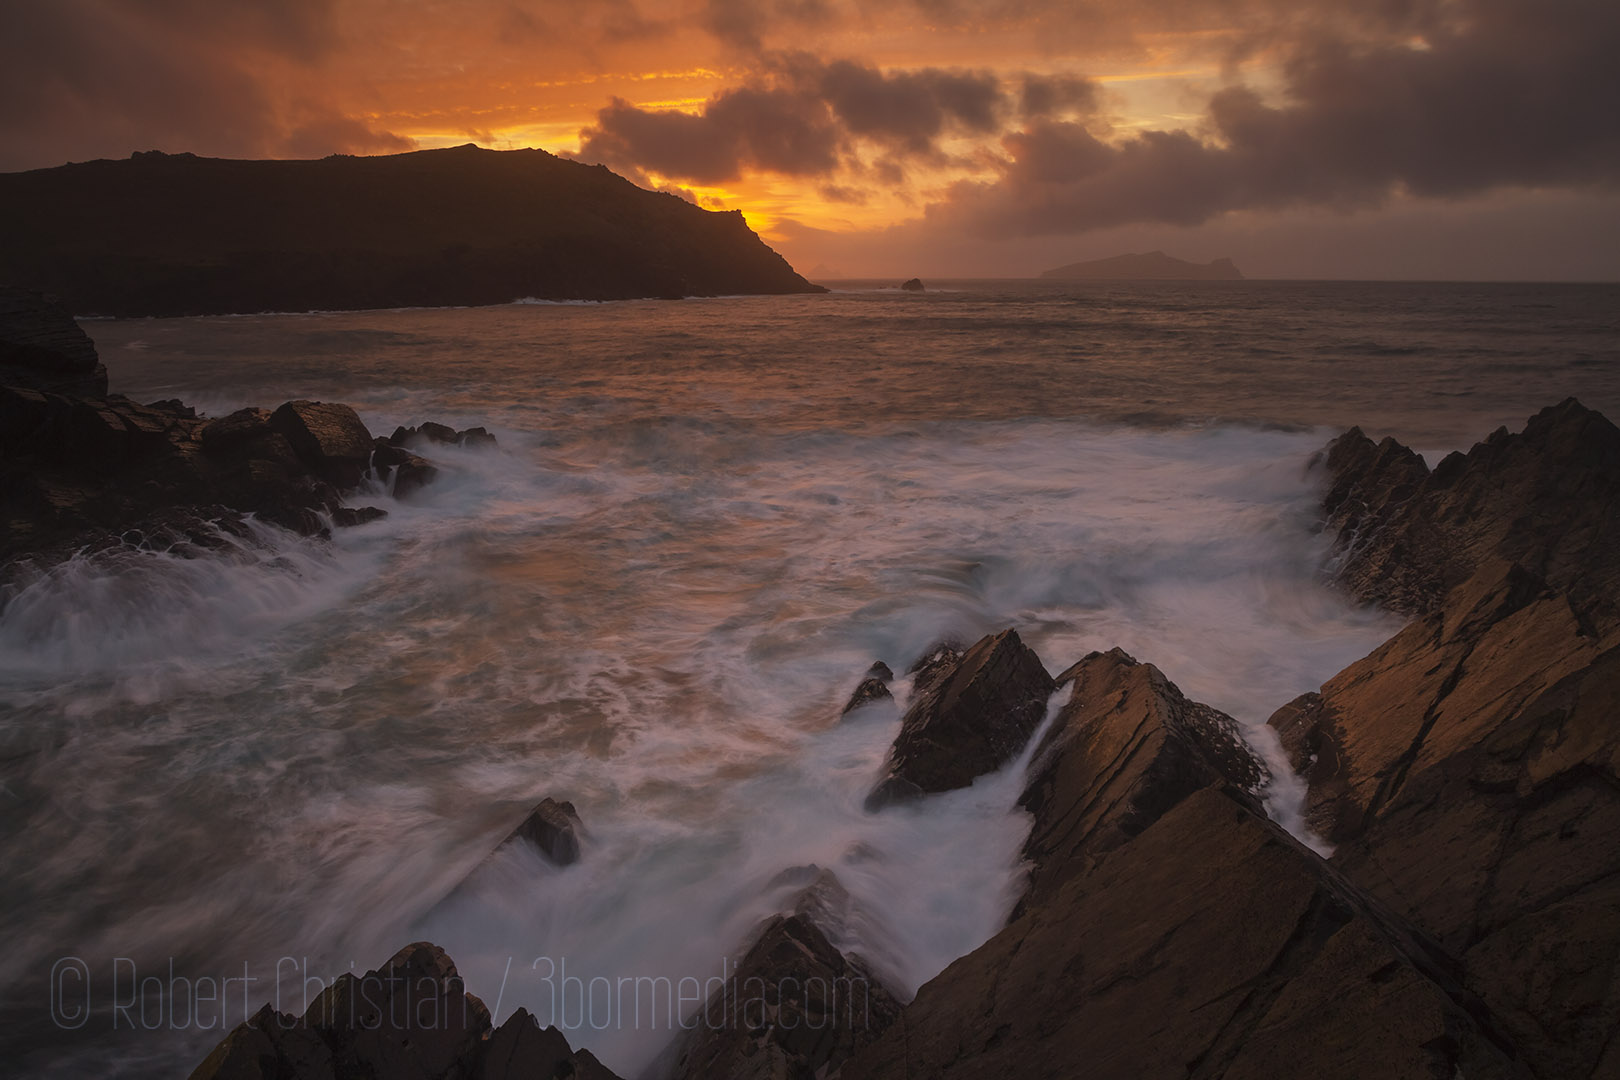 Sunset from the cliffs north of Clogher Strand.